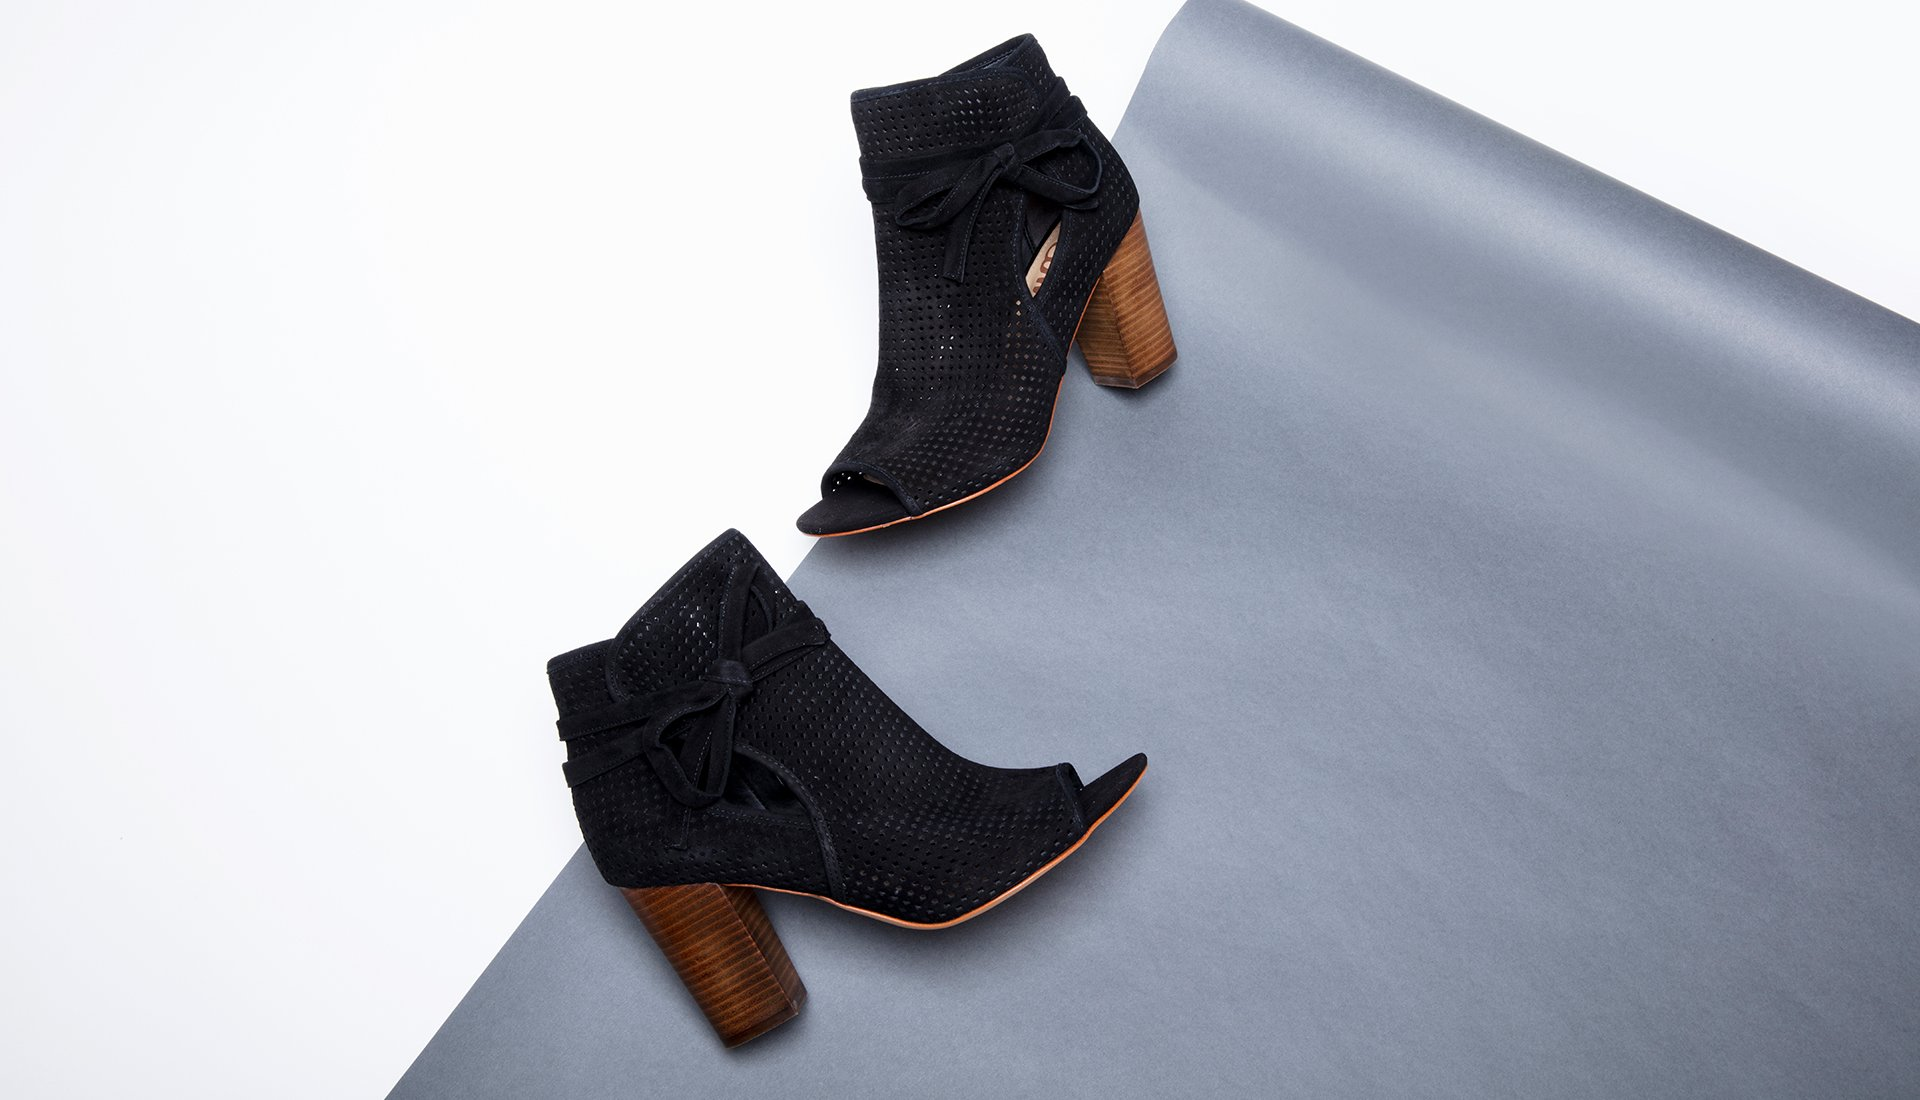 Image of open toe suede black ankle boots.